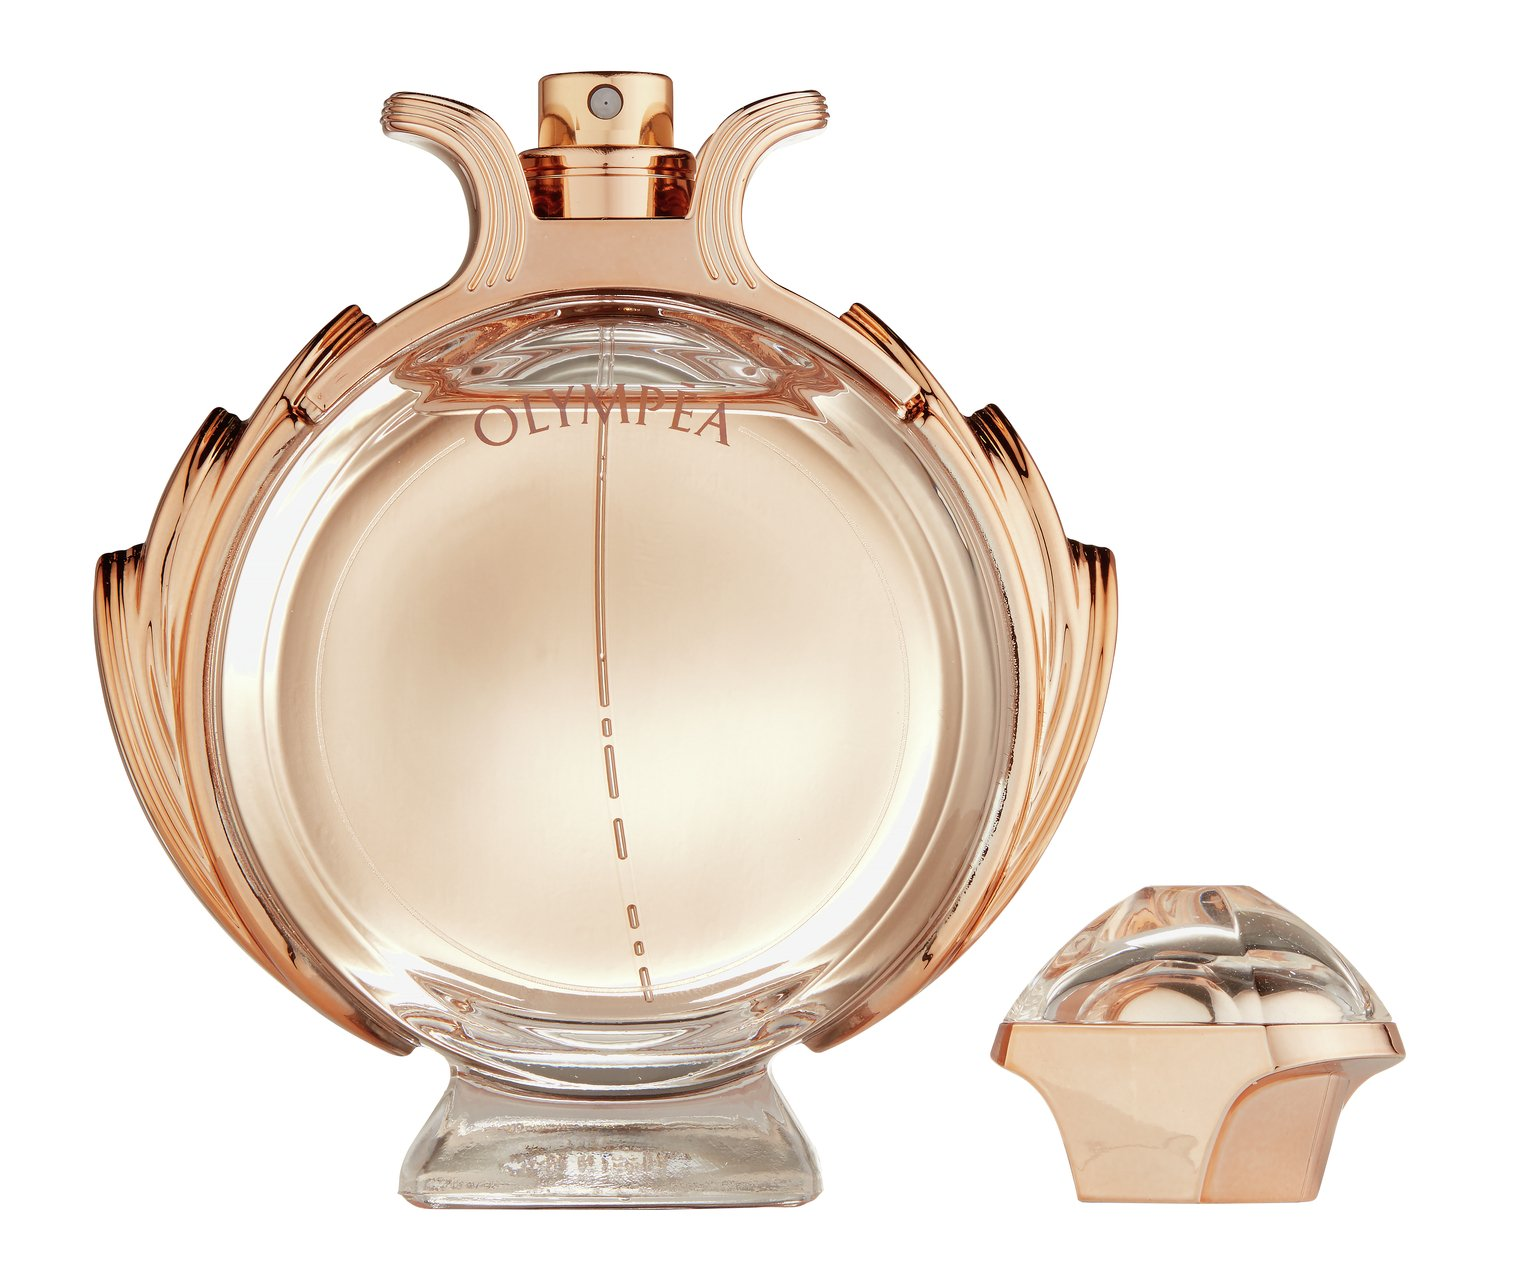 Paco Rabanne Olympea for Women Eau de Parfum - 80ml